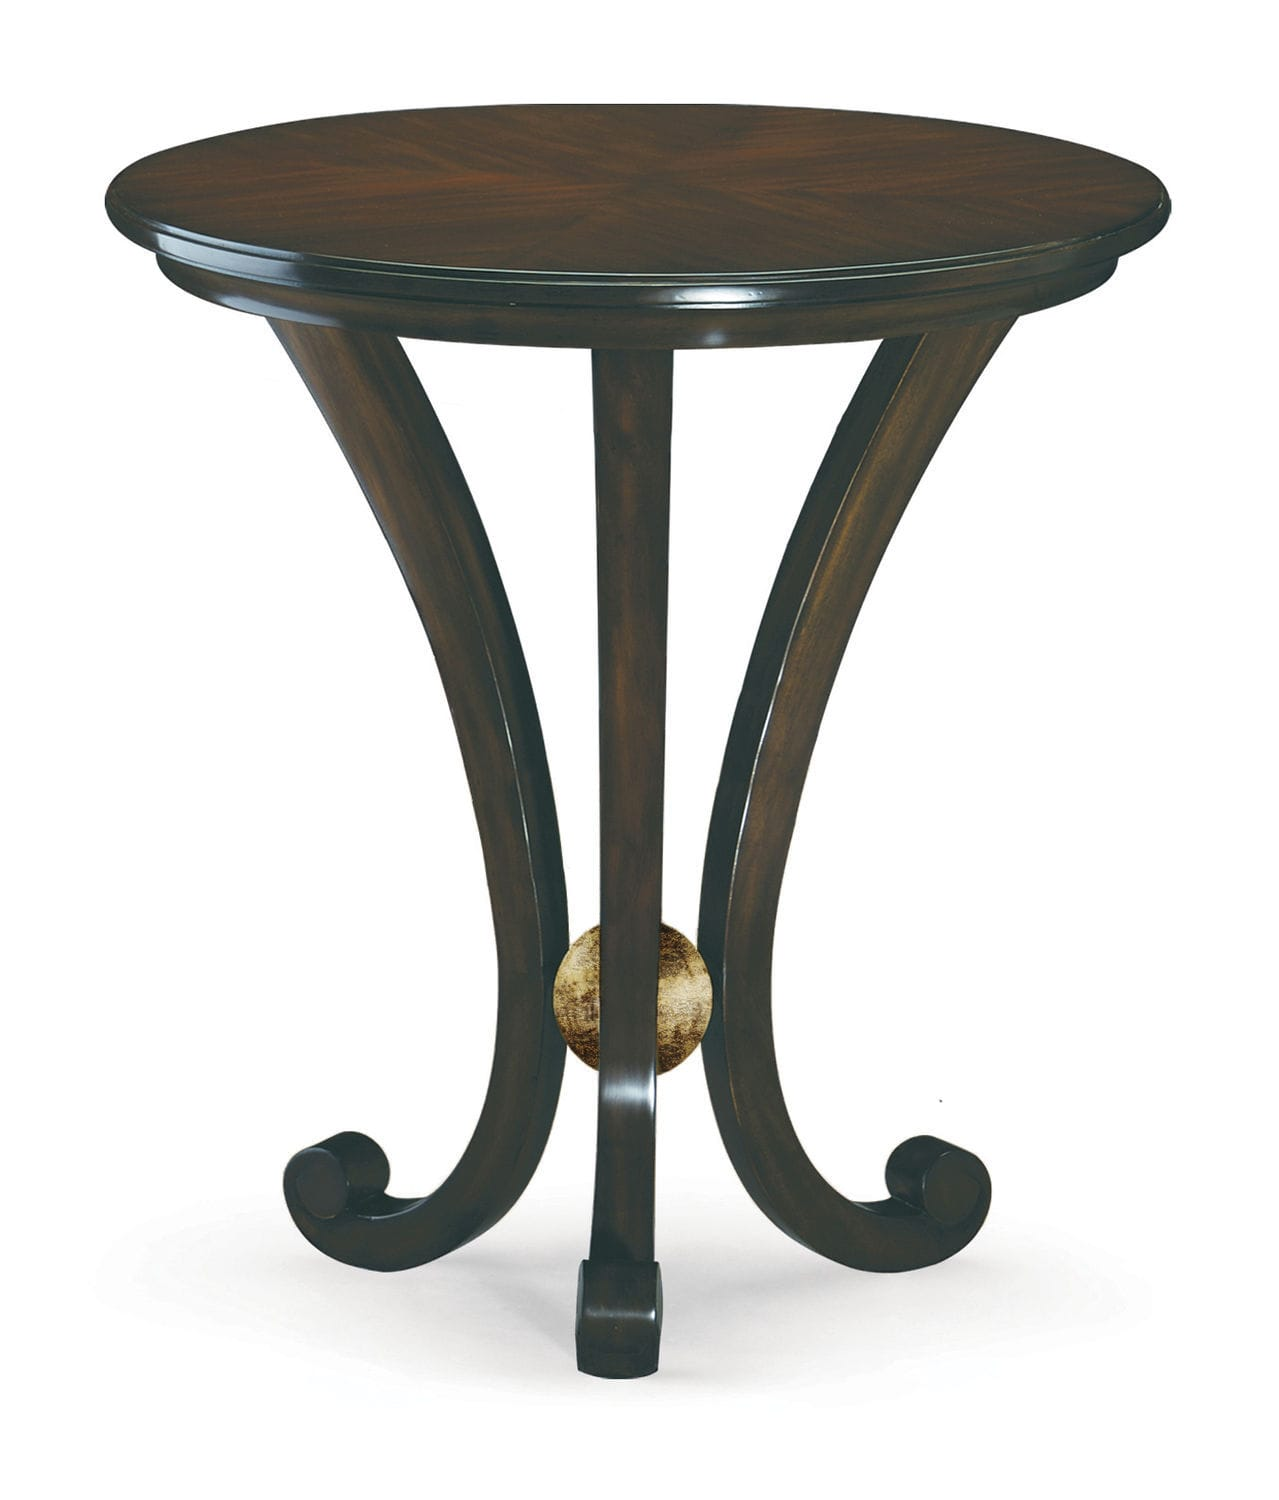 classic pedestal table wood veneer mahogany round martini accent tiny lamps home office decor ideas metal top end coffee and side safavieh gold mirror square target tablecloth for